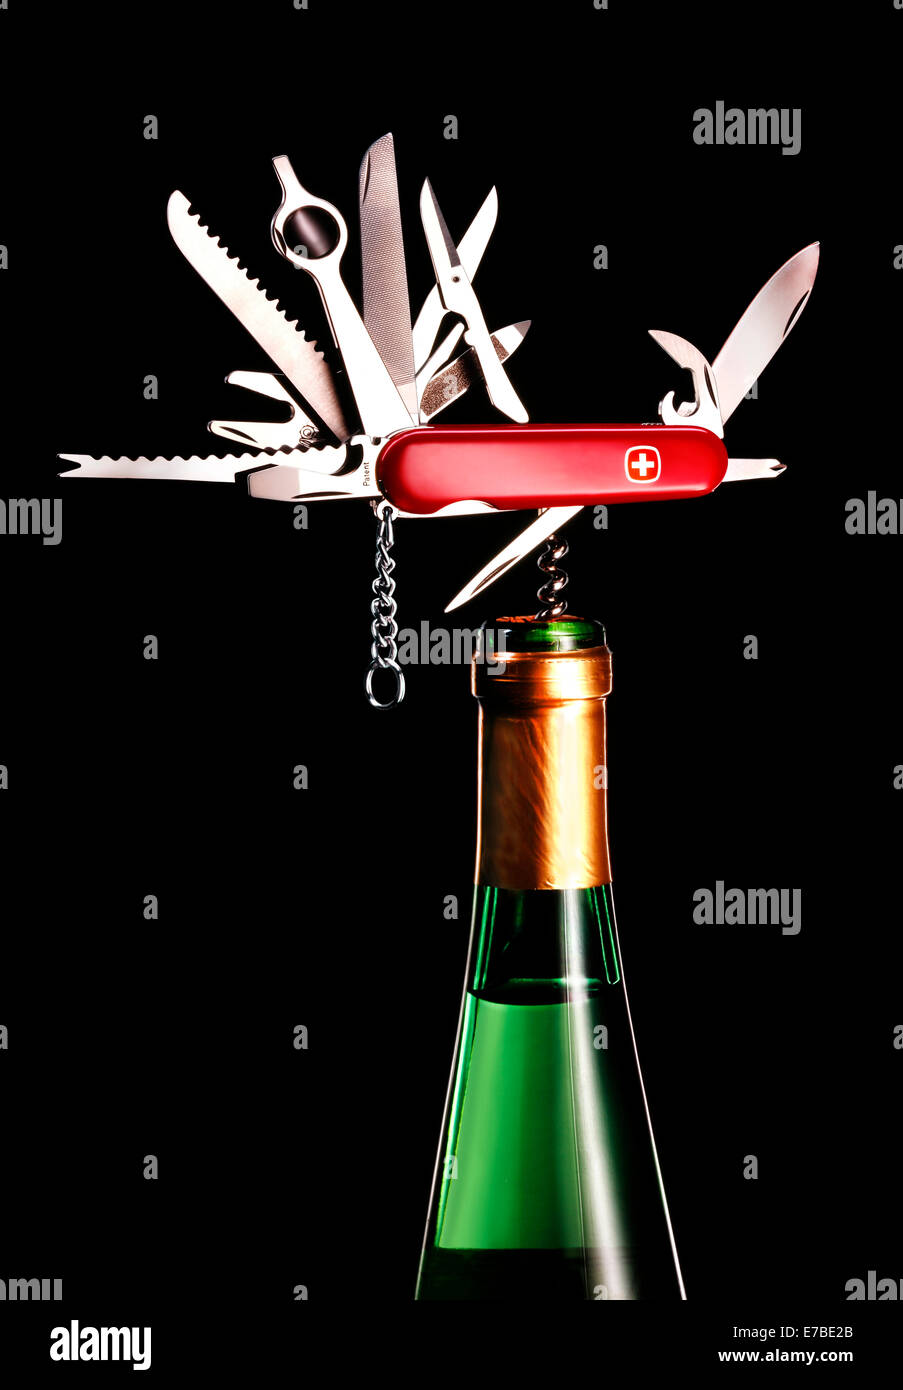 Swiss Army knife, with all parts unfolded, corkscrew in a white wine bottle - Stock Image